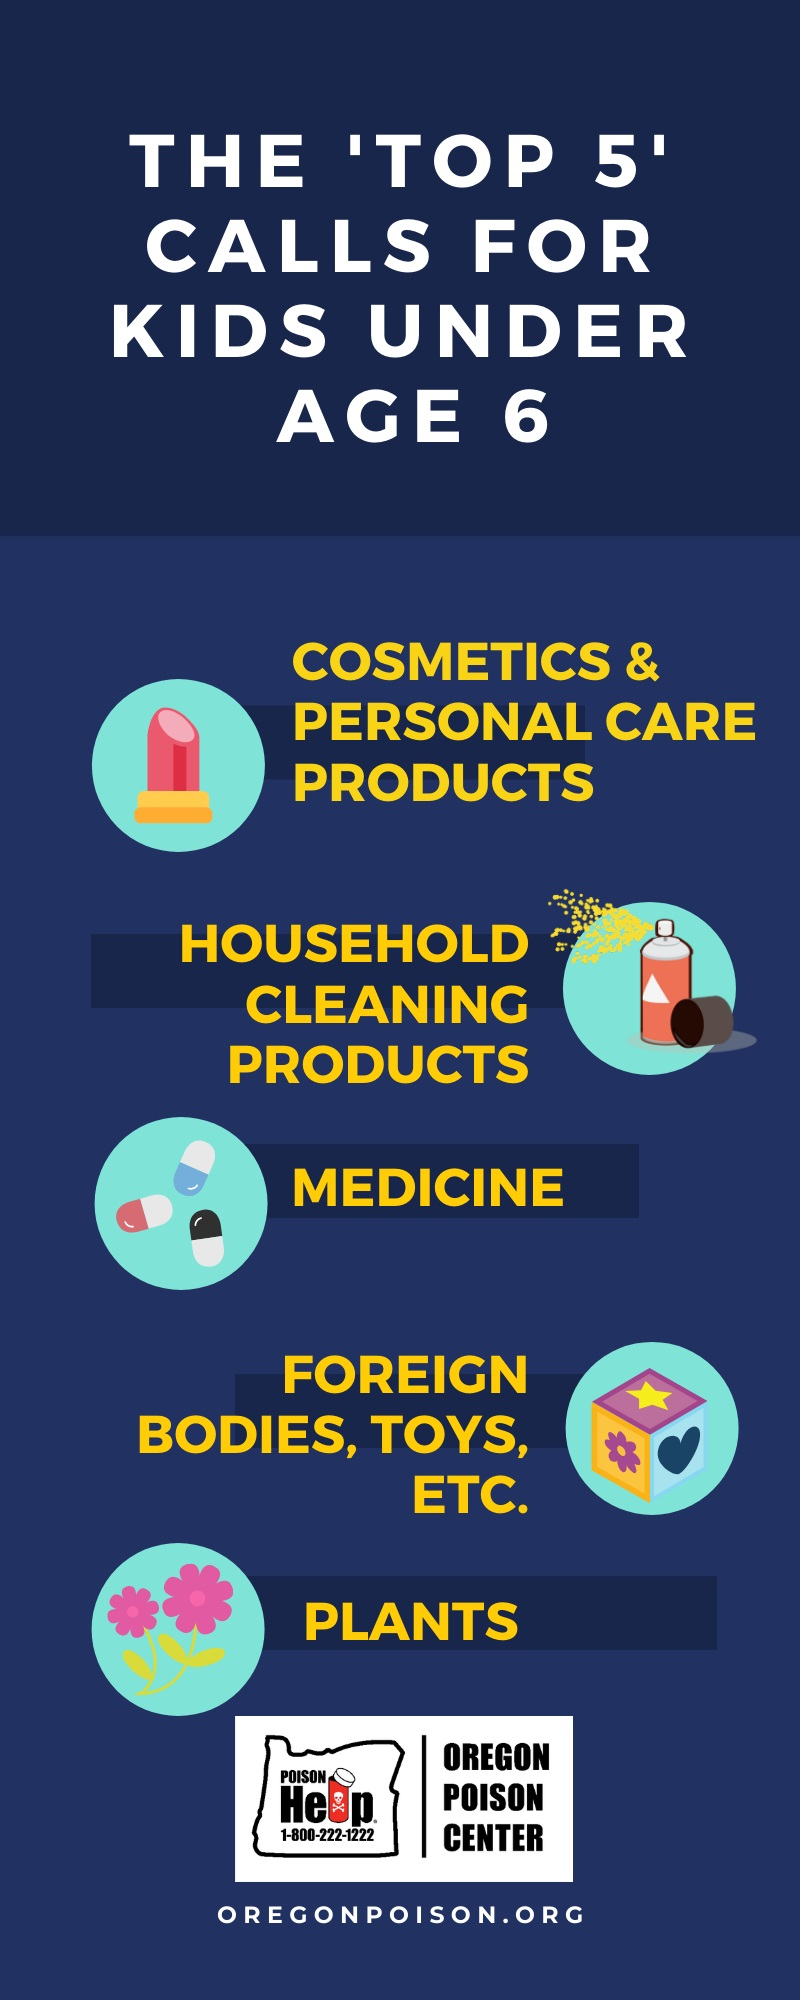 graphic images of the top 5 calls for kids under age 6 to the poison center including: cosmetics and personal care products, household cleaning products, medicine, foreign bodies/toys/etc., and plants